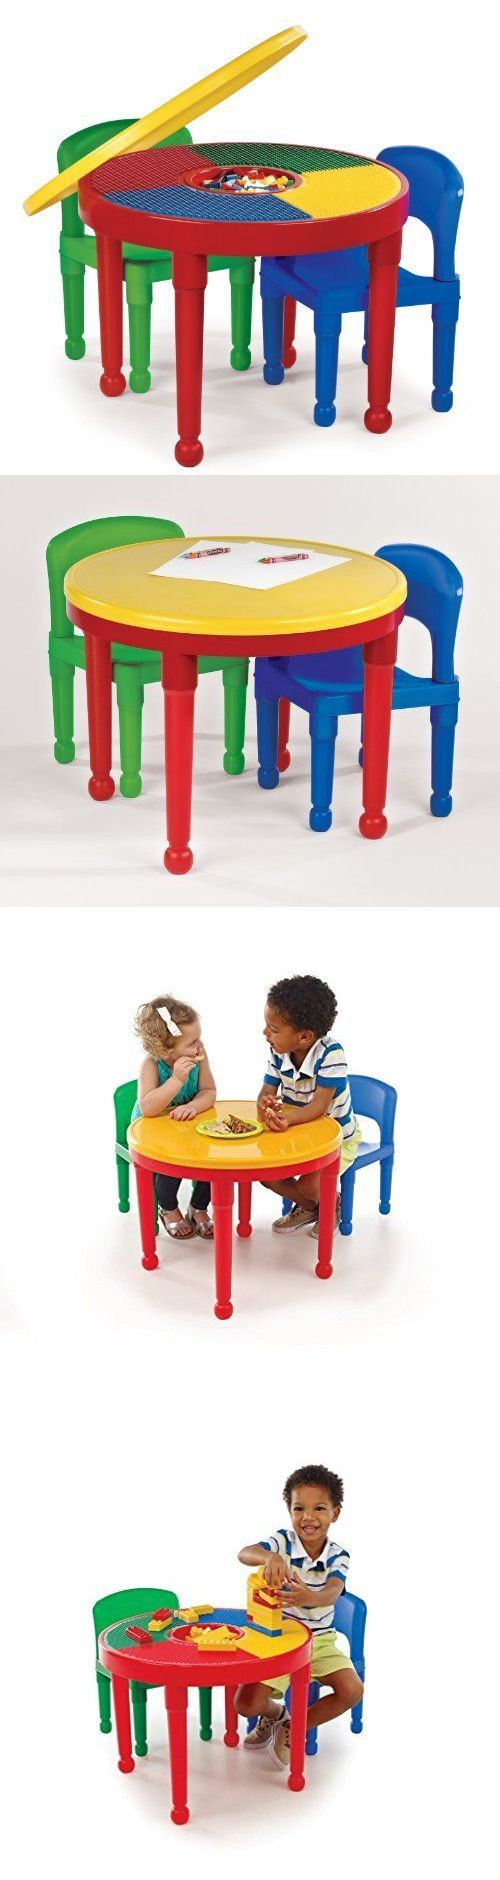 Storage Mats And Play Tables 180020: Lego Kids Table 2 Chairs Round Plastic  Construction Dining